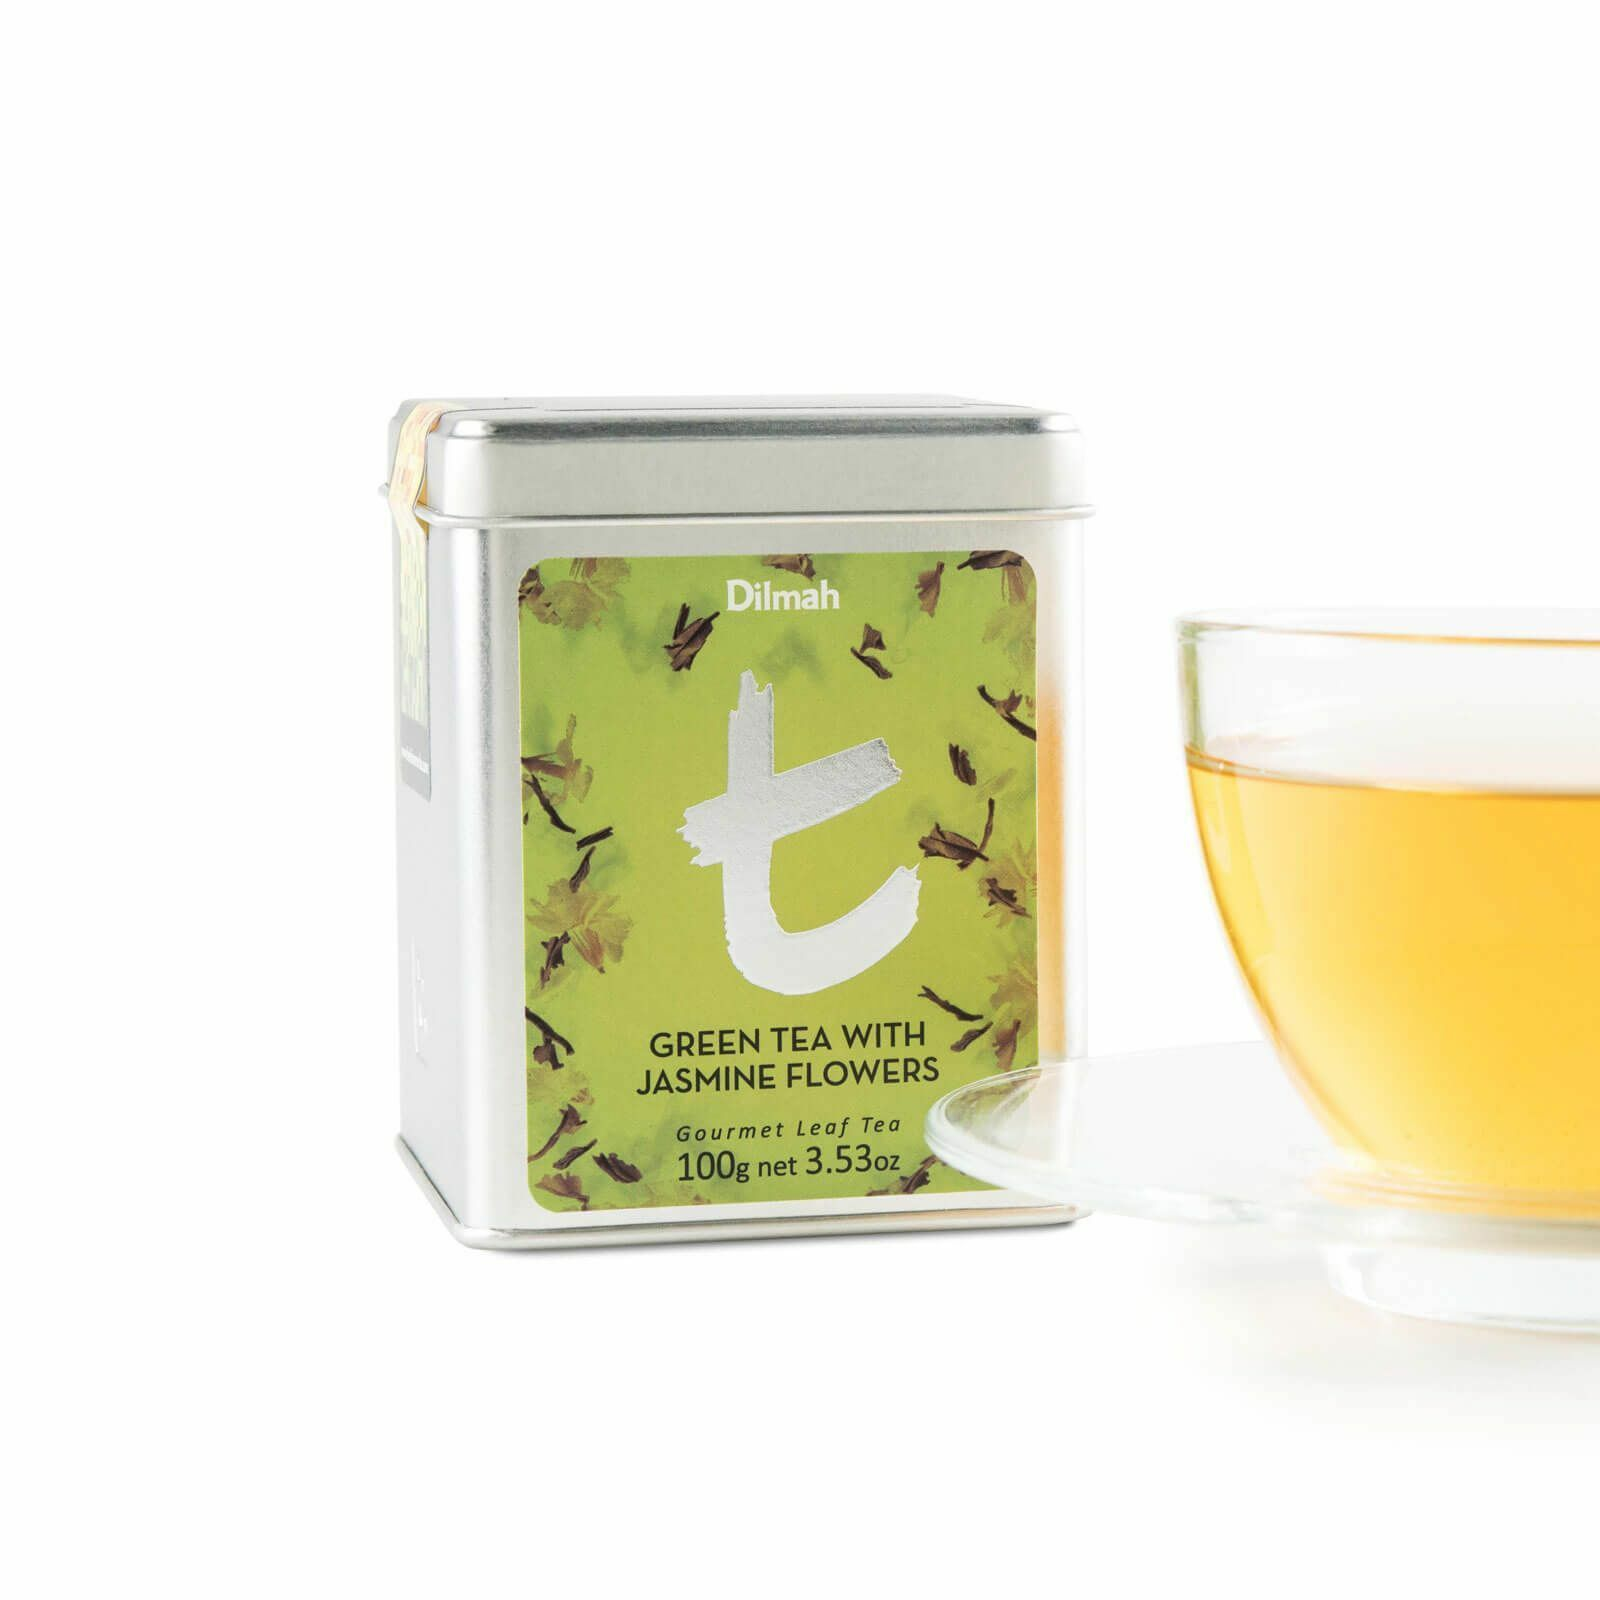 Dilmah green tea with jasmine flowers 100g ceylon loose leaf tea tin dilmah green tea with jasmine flowers 100g ceylon loose leaf tea tin caddi izmirmasajfo Images